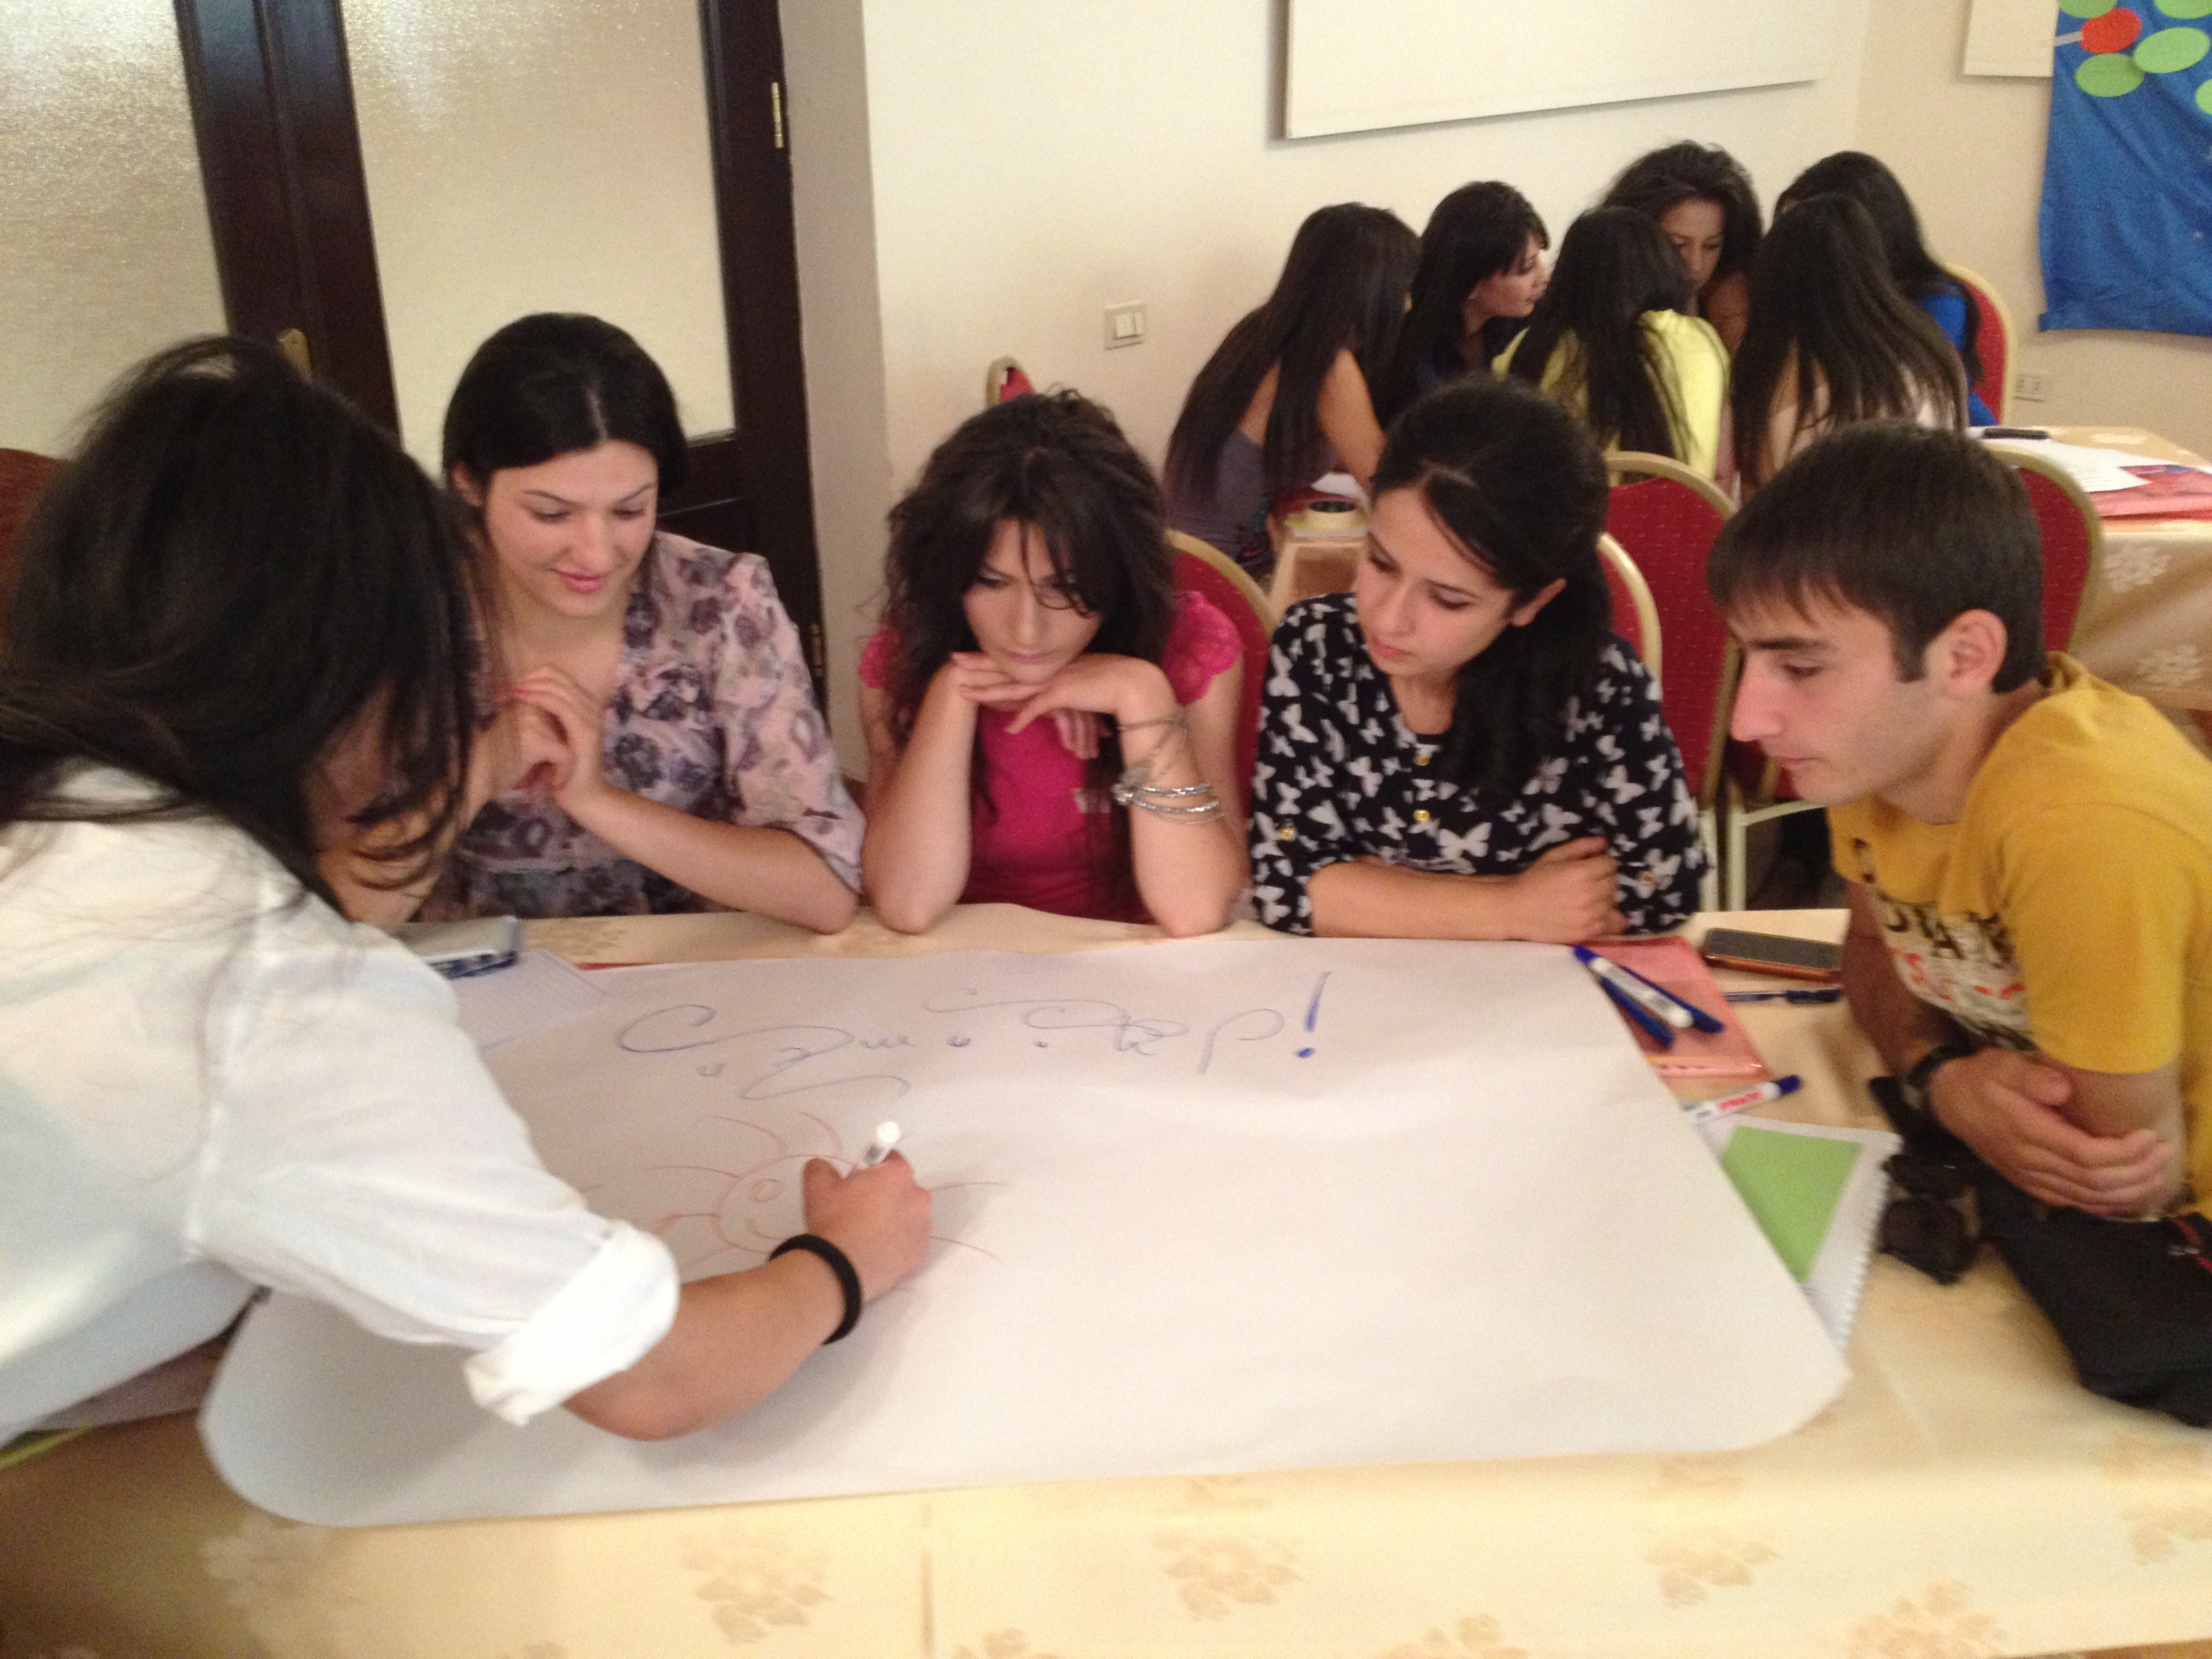 YARCC_Youth Training on Shared Values  Yerevan_Preparing a Poster (4) - Copy